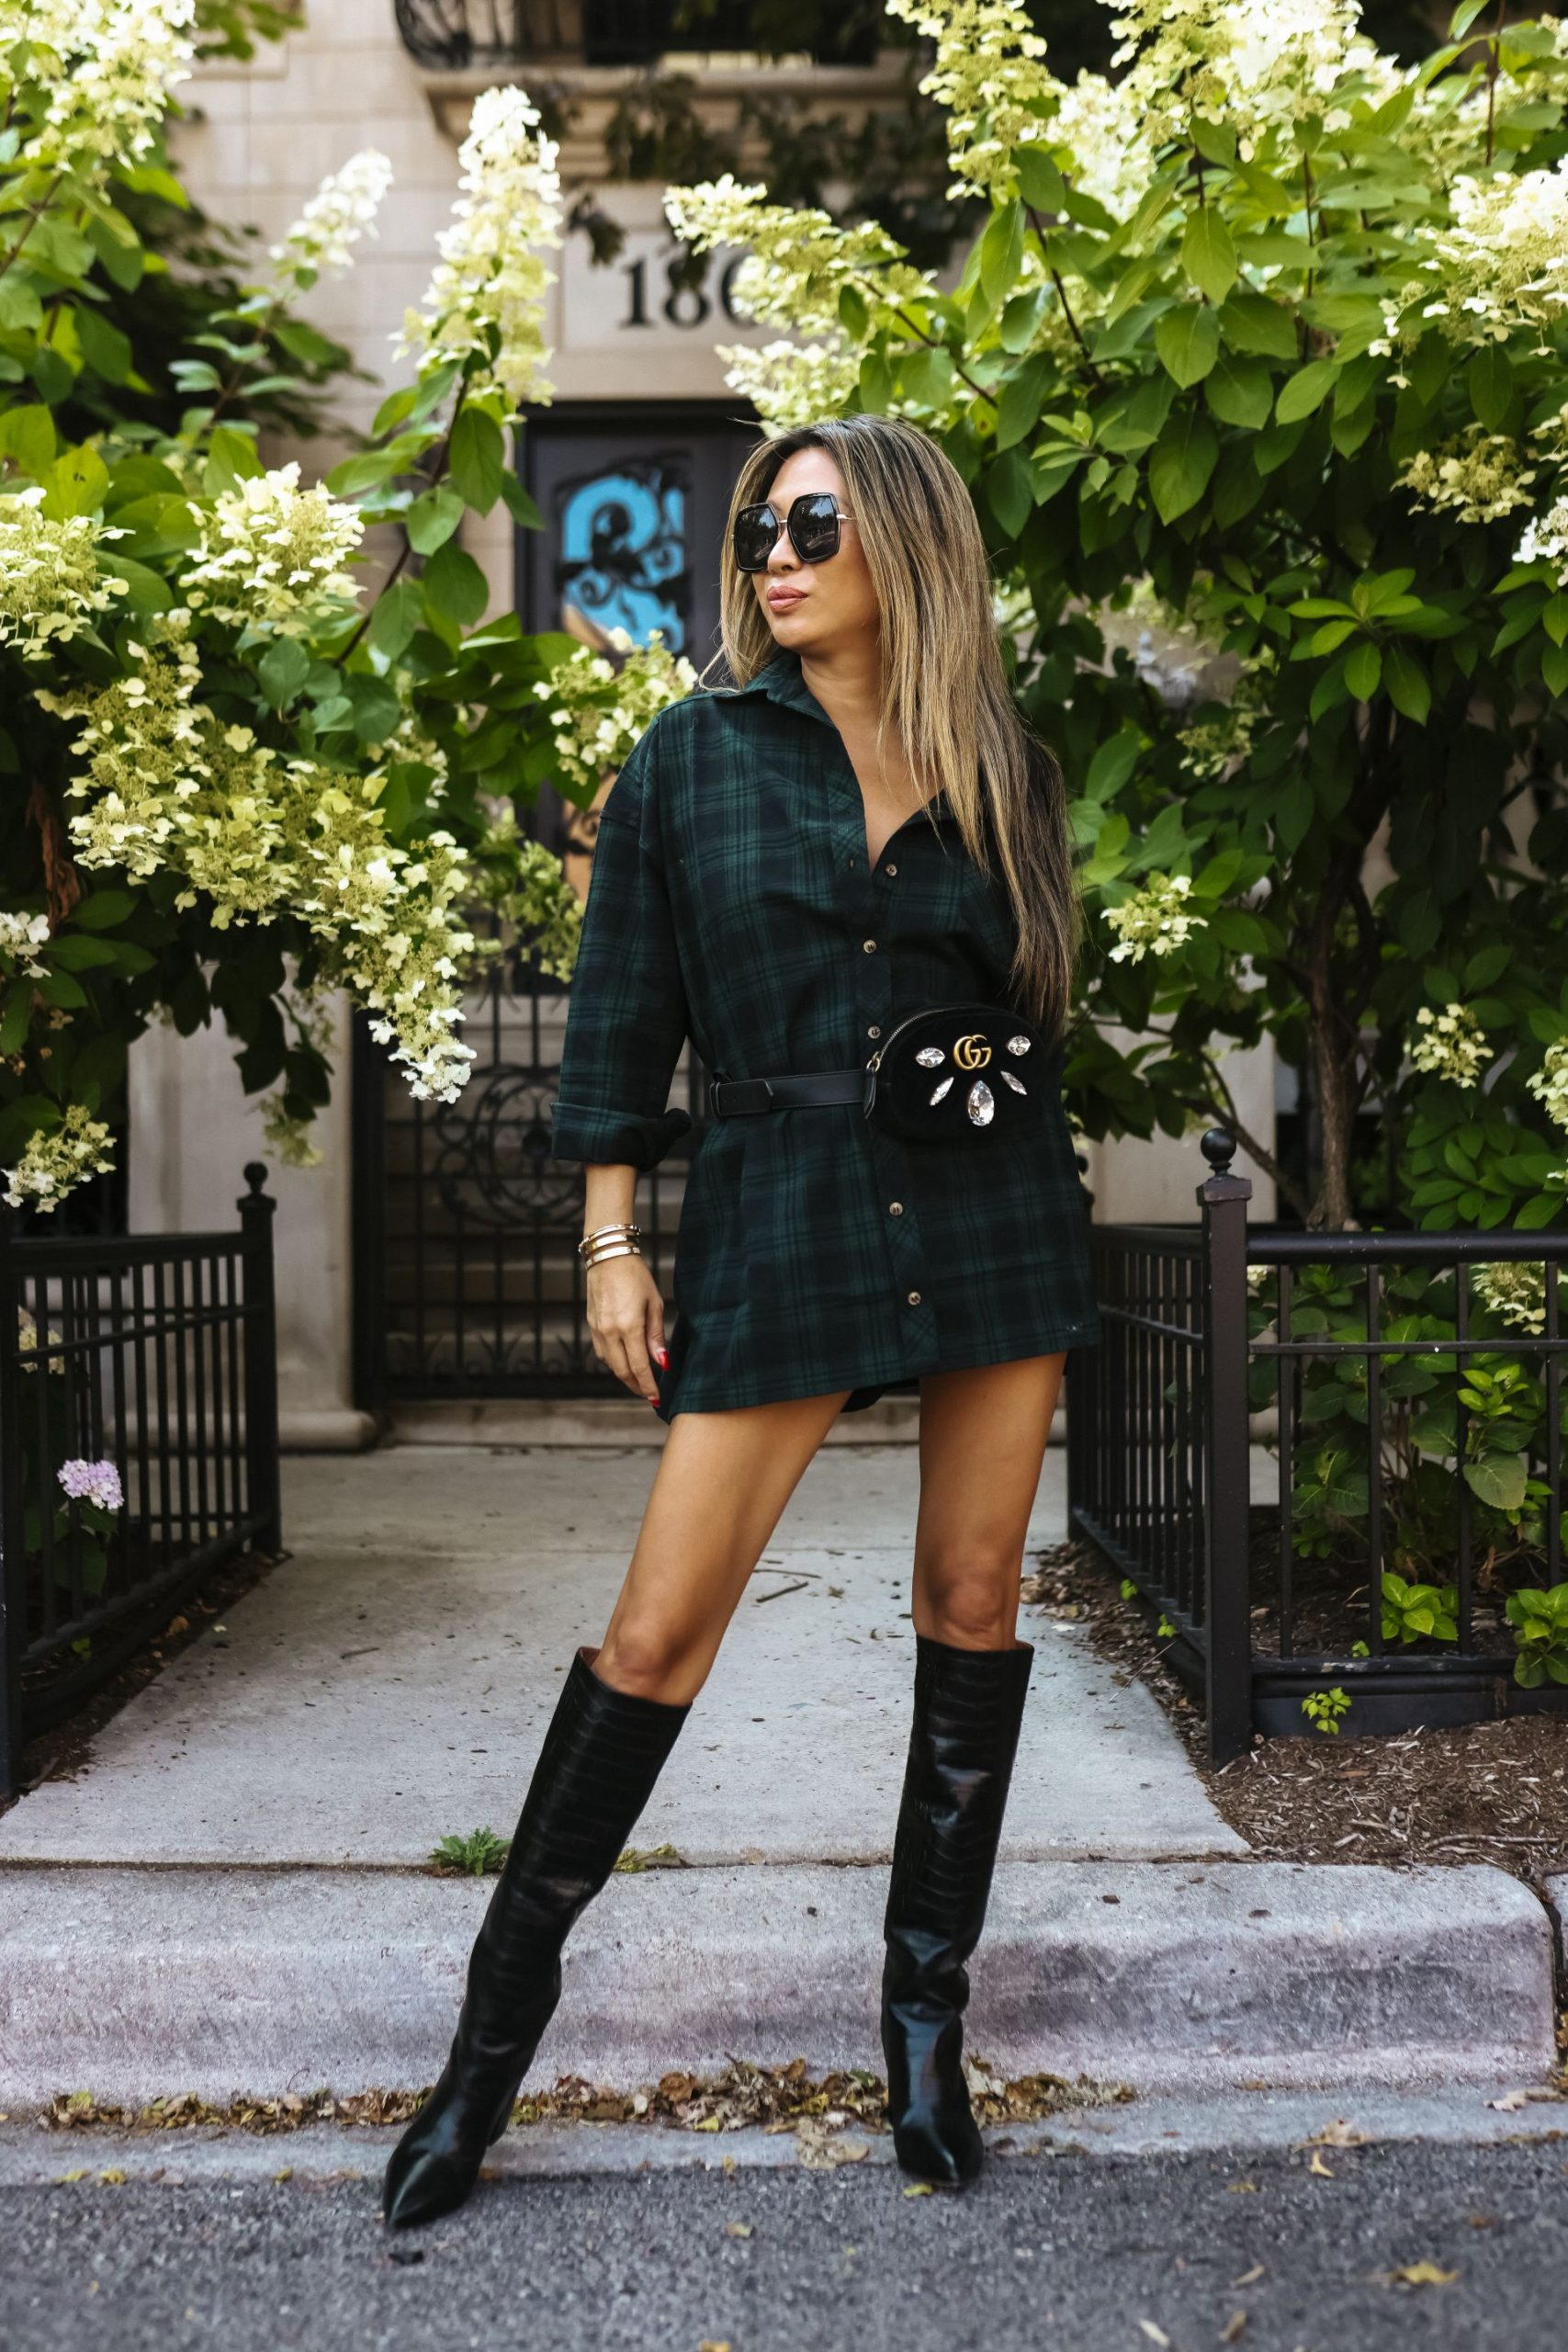 superdown Audriana Oversized Flannel Top, Schutz Maryana Pointed Toe Boot, flannel shirt dress, flannel shirt outfit idea, flannel shirt outfit, flannel shacket, shacket outfit, shacket inspiration, shirt dress and boots, gucci fanny pack, gucci belt bag, Revolve fall outfits, fall outfit ideas, fall outfit inspiration, fall style, fall street style, style photography, fashion photography ideas, street style photo ideas, street style inspiration, Red Soles and Red Wine, Jennifer Worman